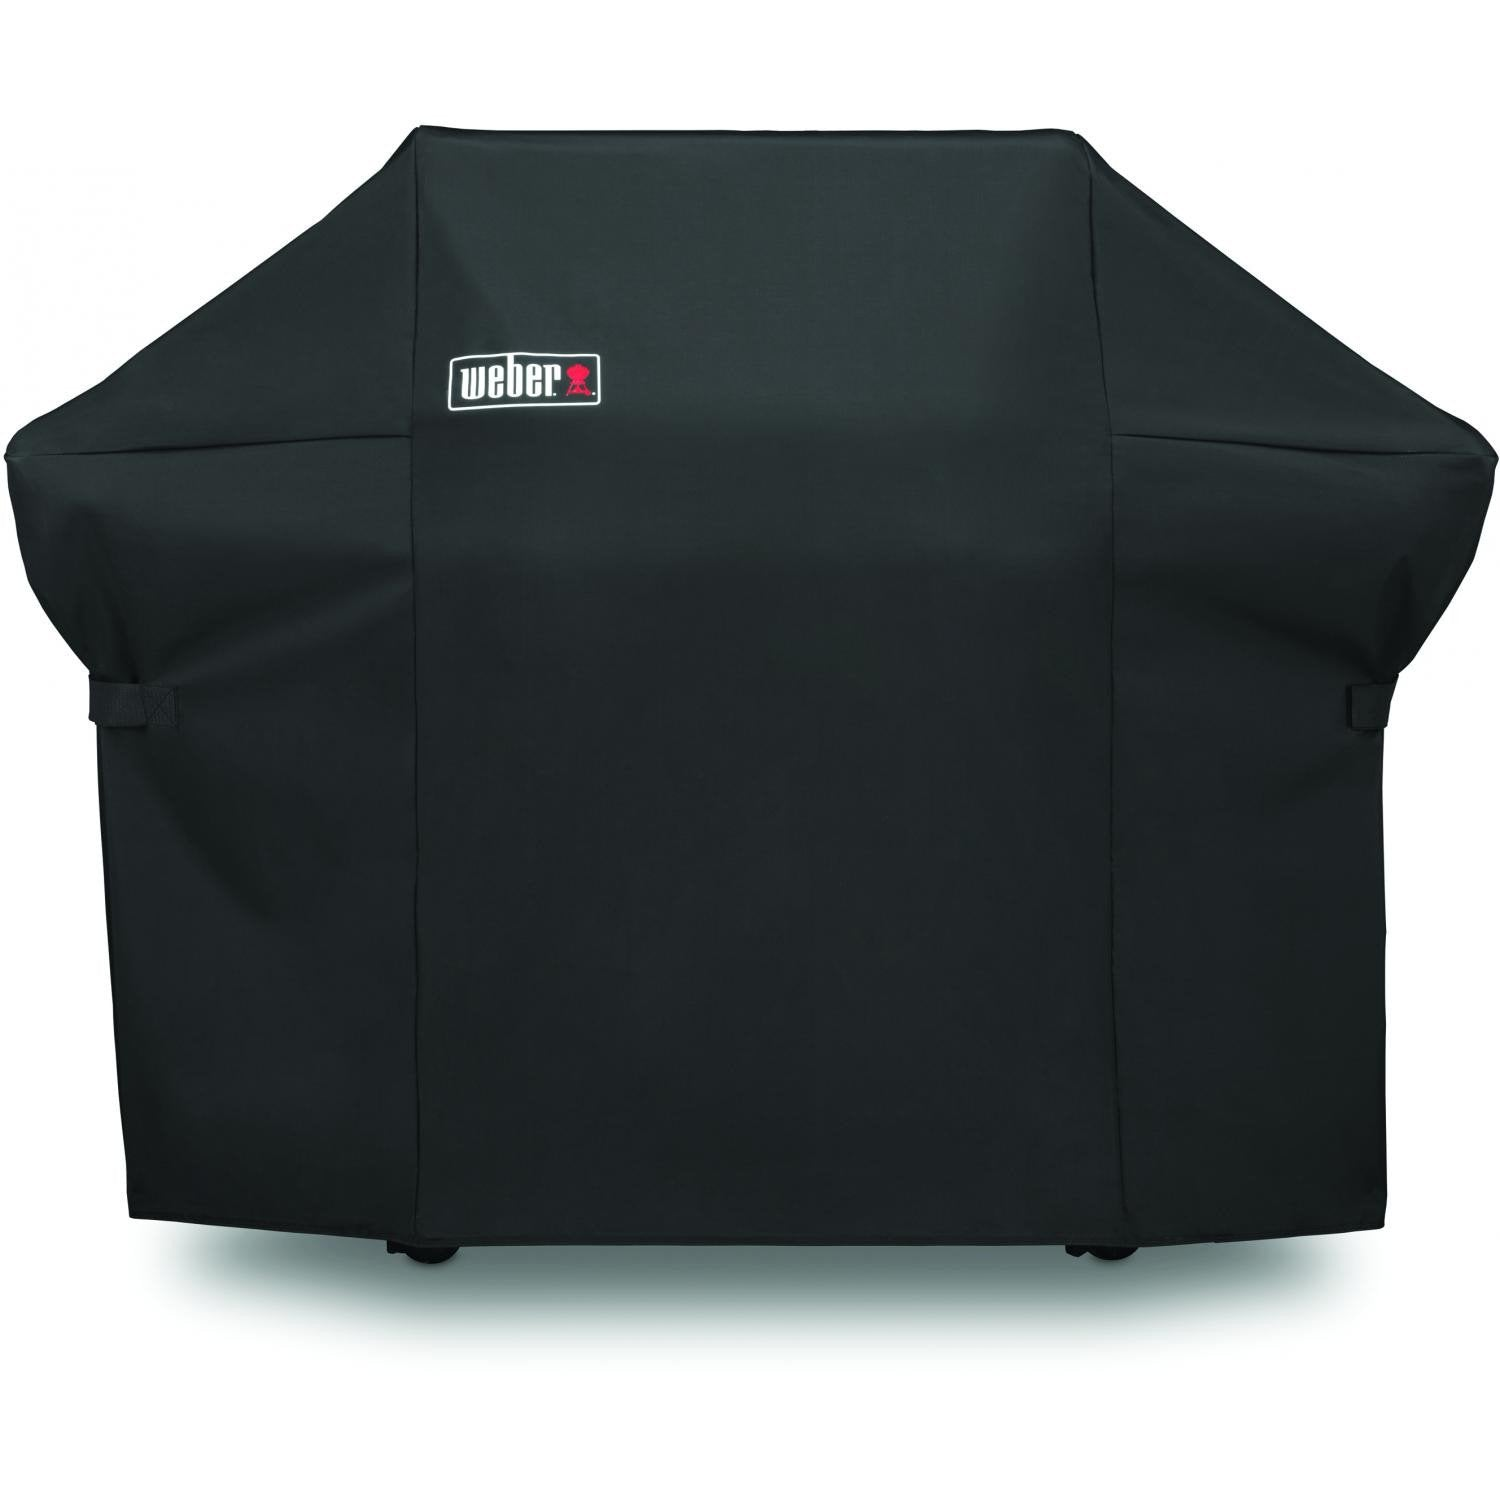 Weber 7108 Premium Grill Cover for Summit 400 Series Gas Grills